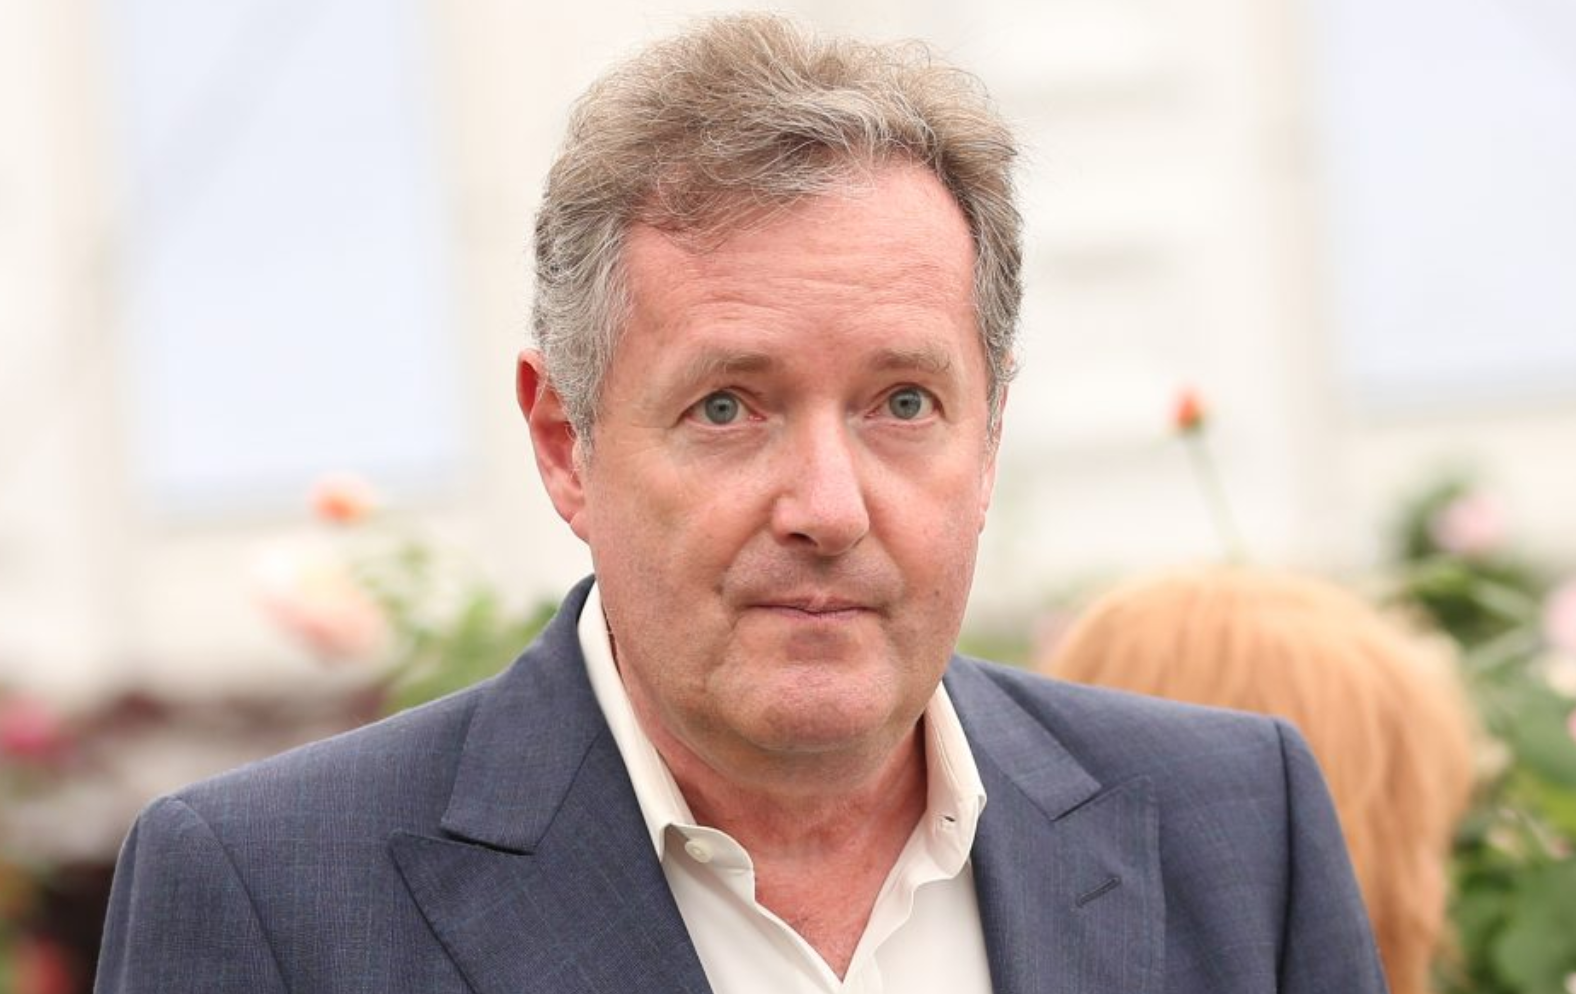 Piers Morgan slammed for 'mocking' Twitter user over comments about obesity